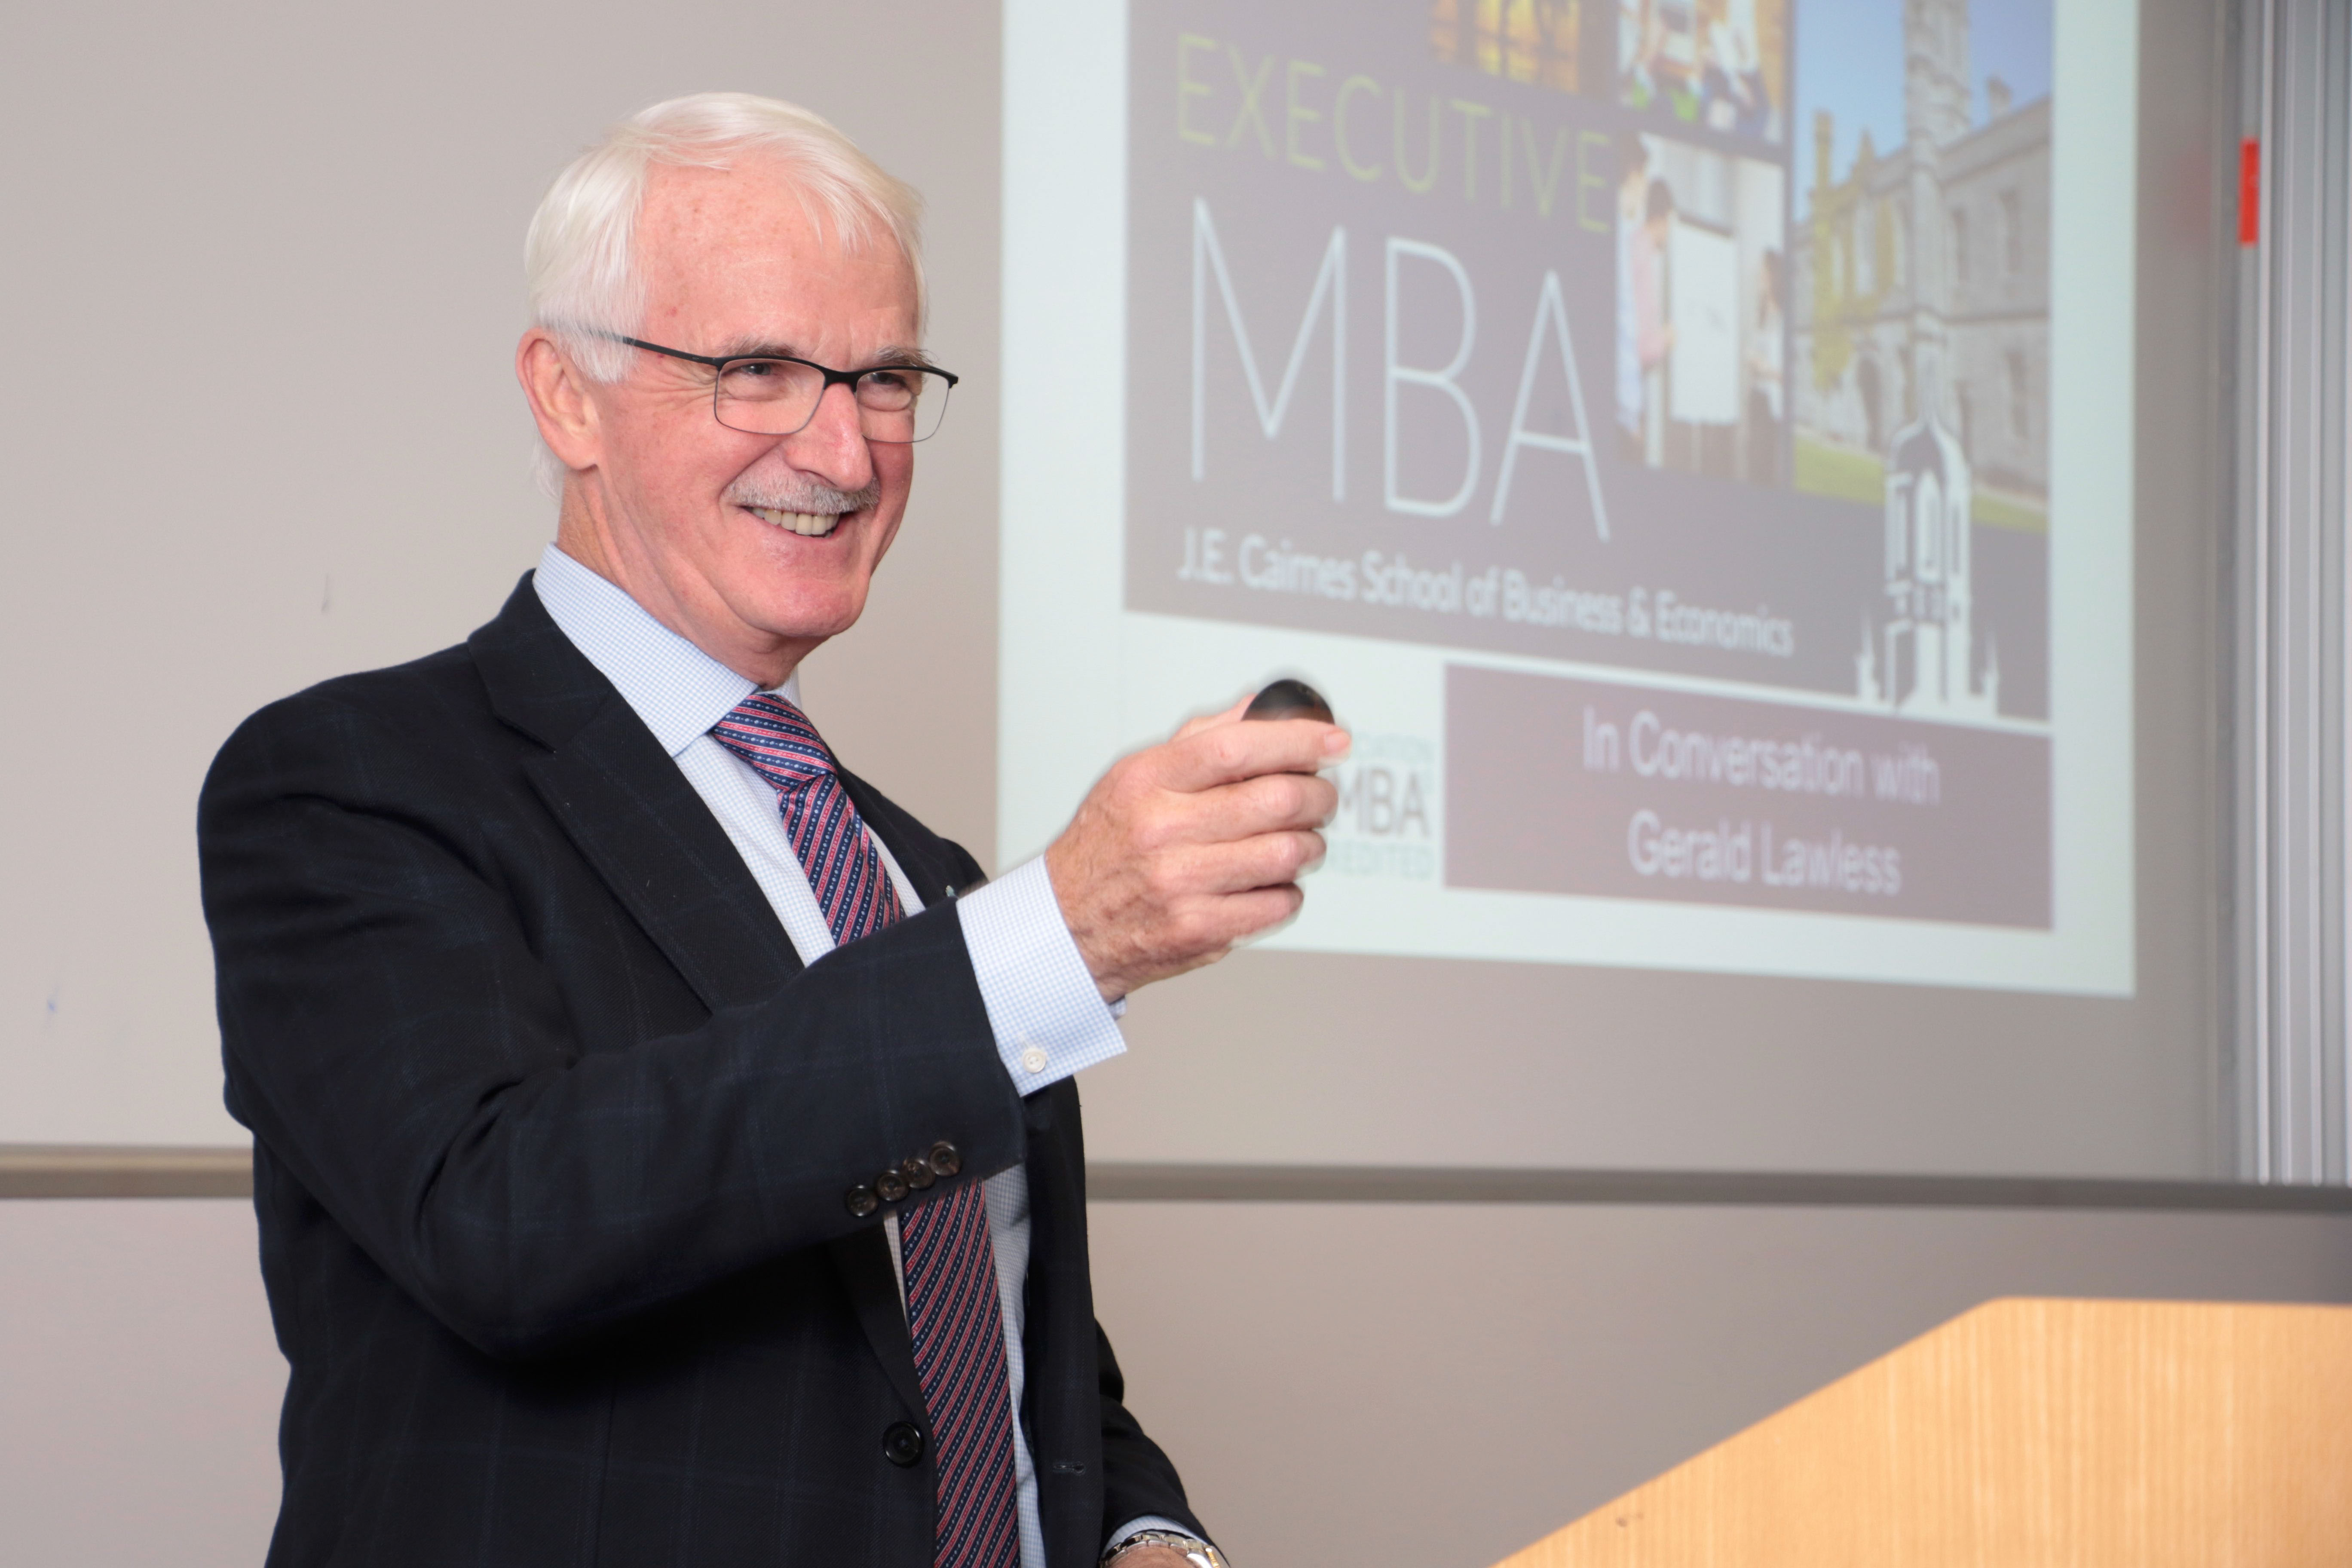 Gerald Lawless MBA Masterclass NUIG 1 February 2018